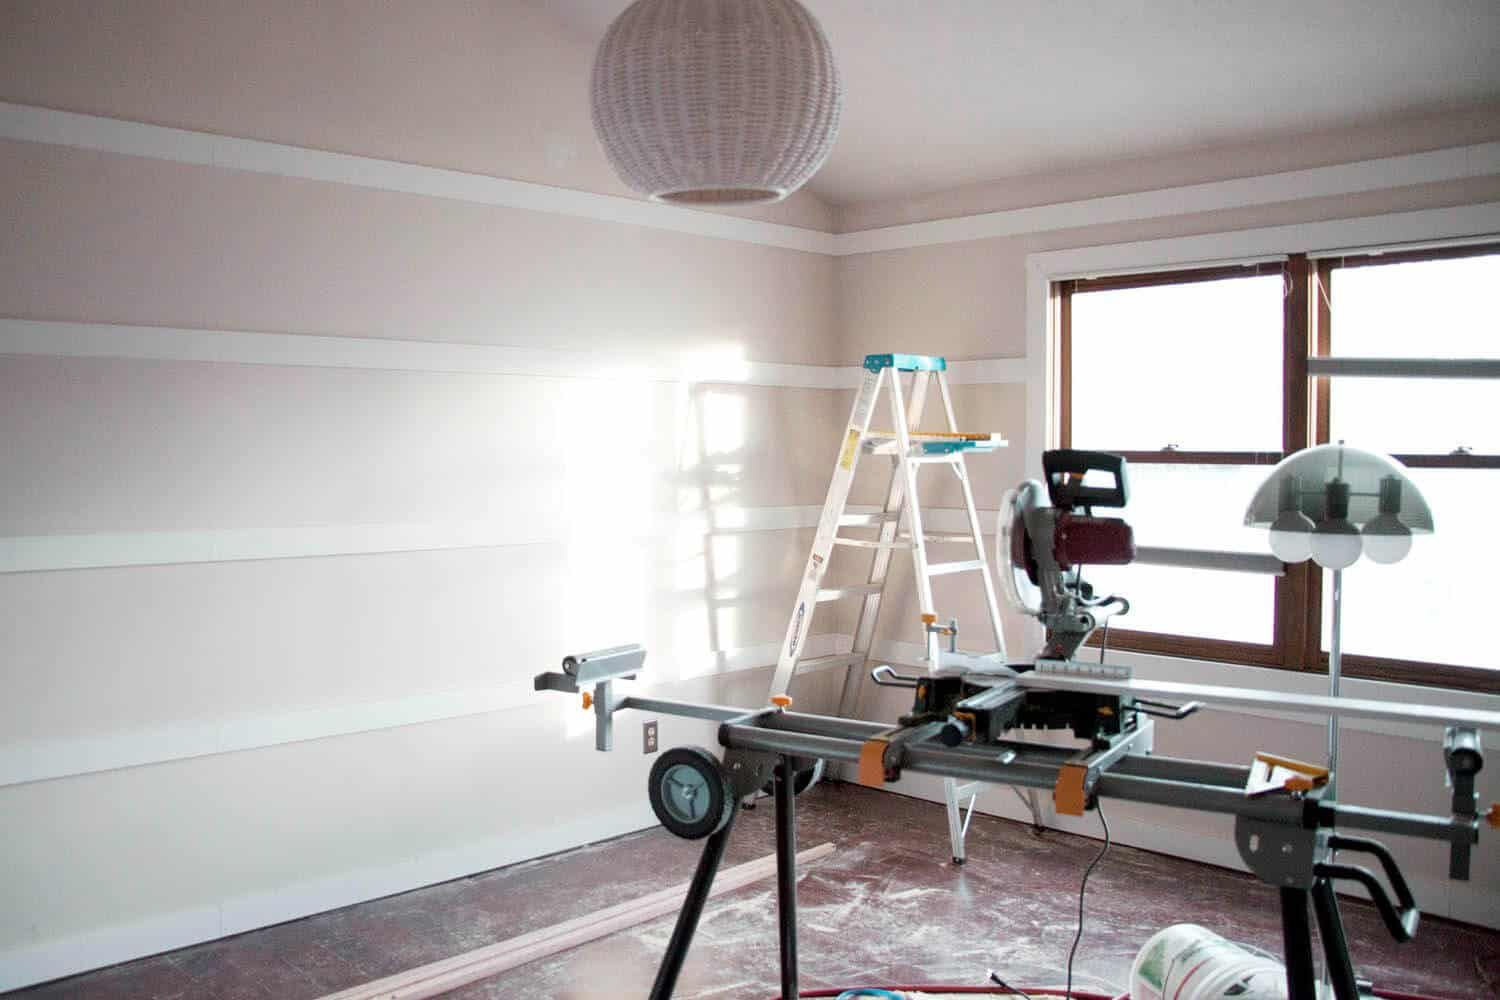 How to Make a Board and Batten Wall